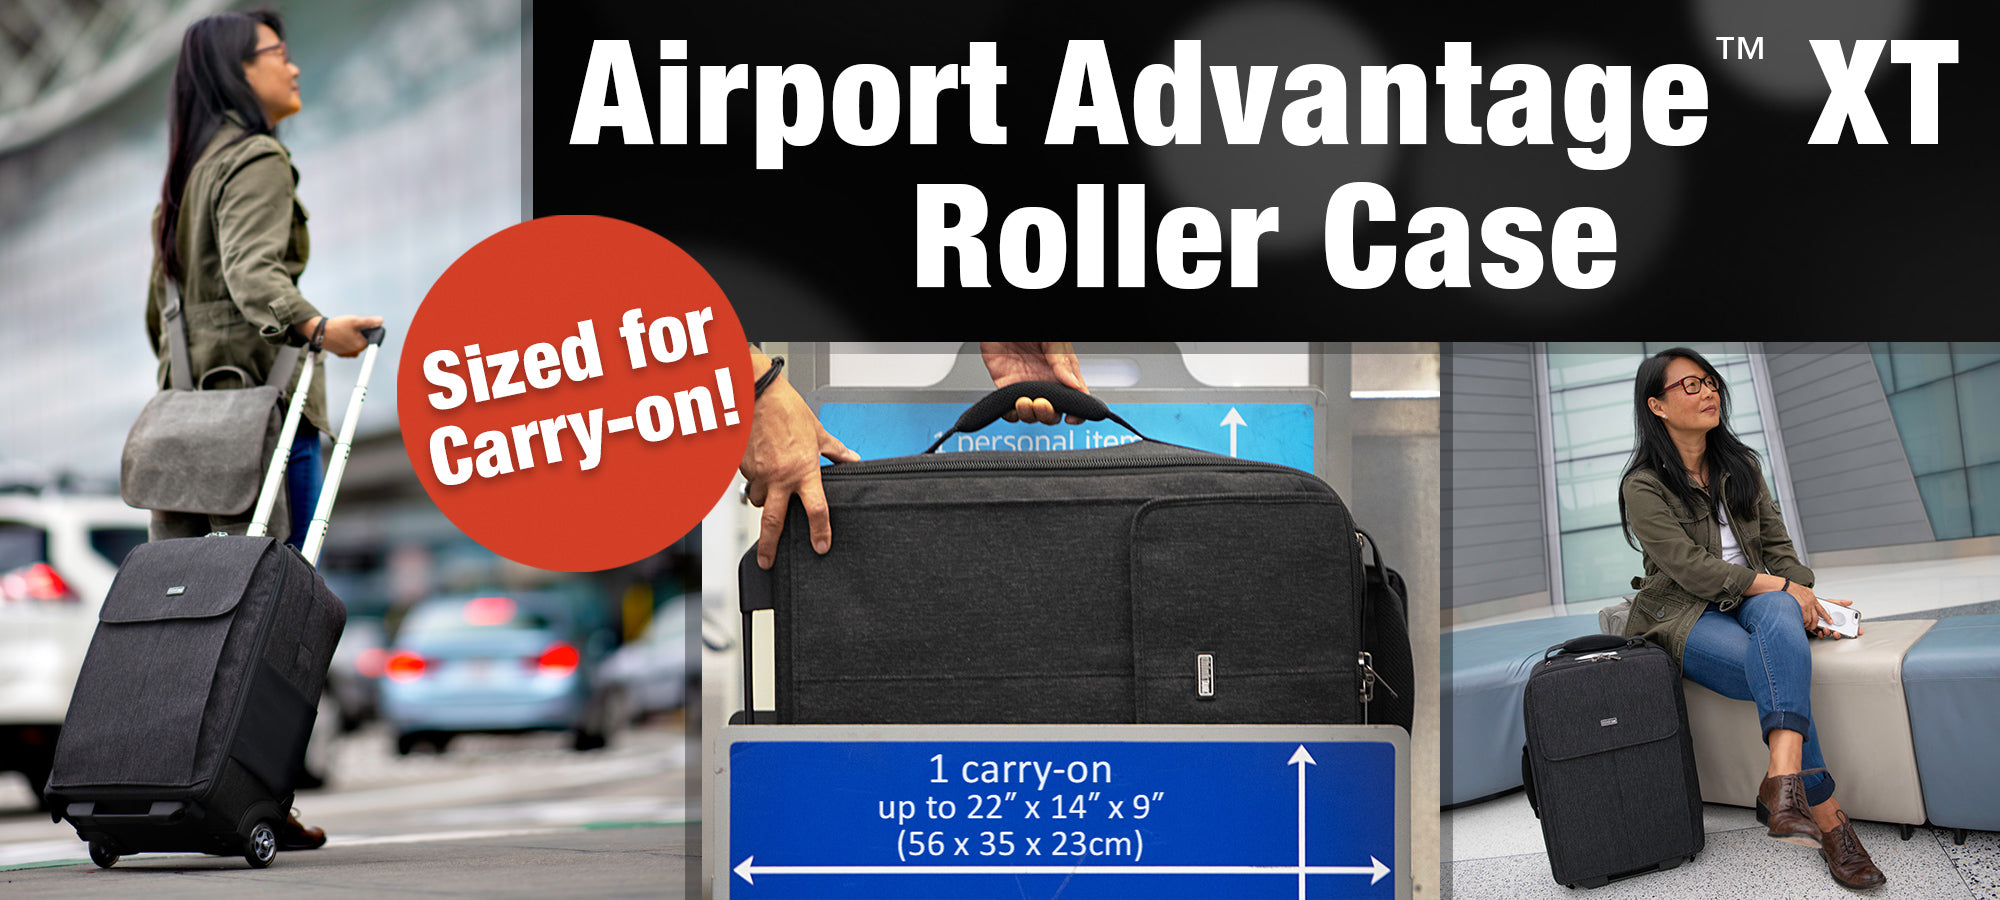 The Airport Advantage XT - Weighing only 7.5 lbs. (3.4kg), the Airport Advantage XT rolling camera case meets increasingly restrictive International airline requirements